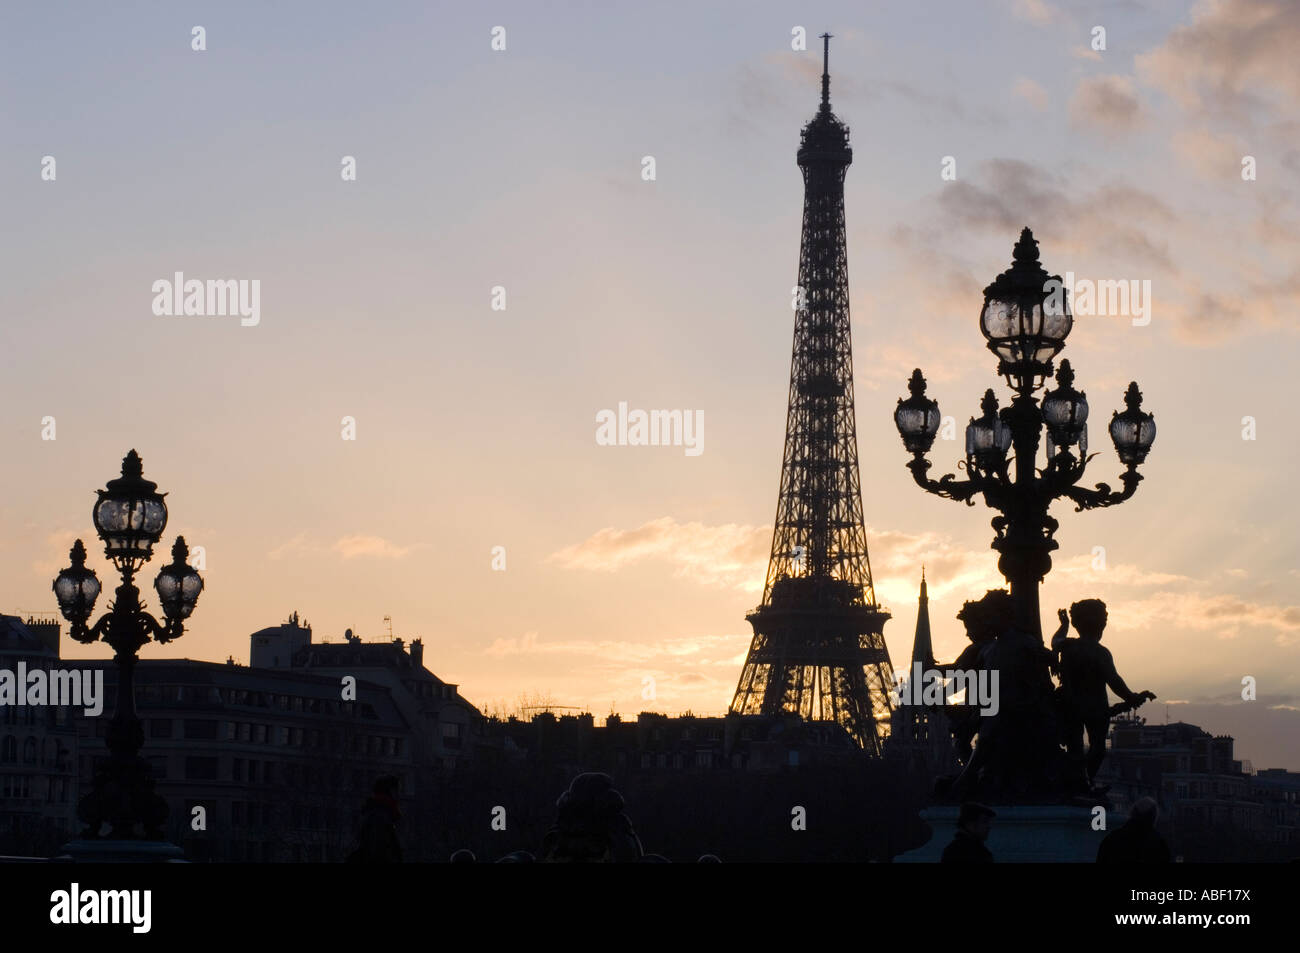 Eiffel Tower. Paris. France. Seen from the Alexandre III bridge (detail of bridge included in foreground) - Stock Image